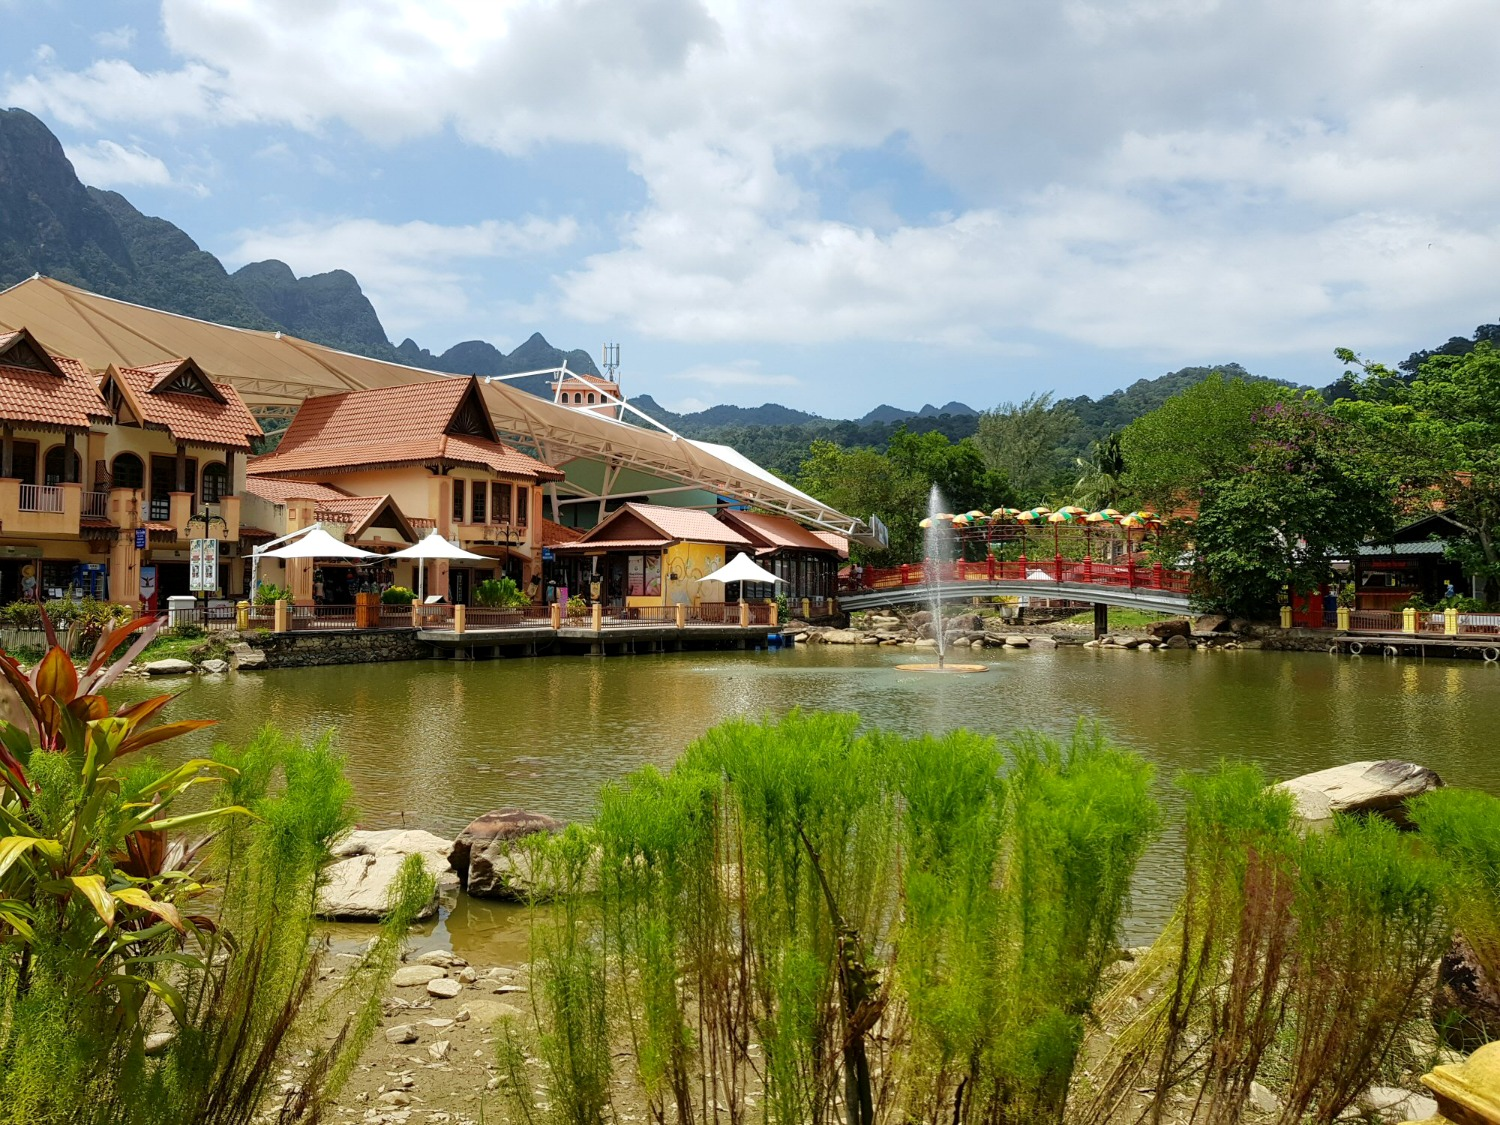 Oriental Village in Langkawi, with its shops, restaurants and attractions set around a lake, including Langkawi Art in Paradise 3D museum